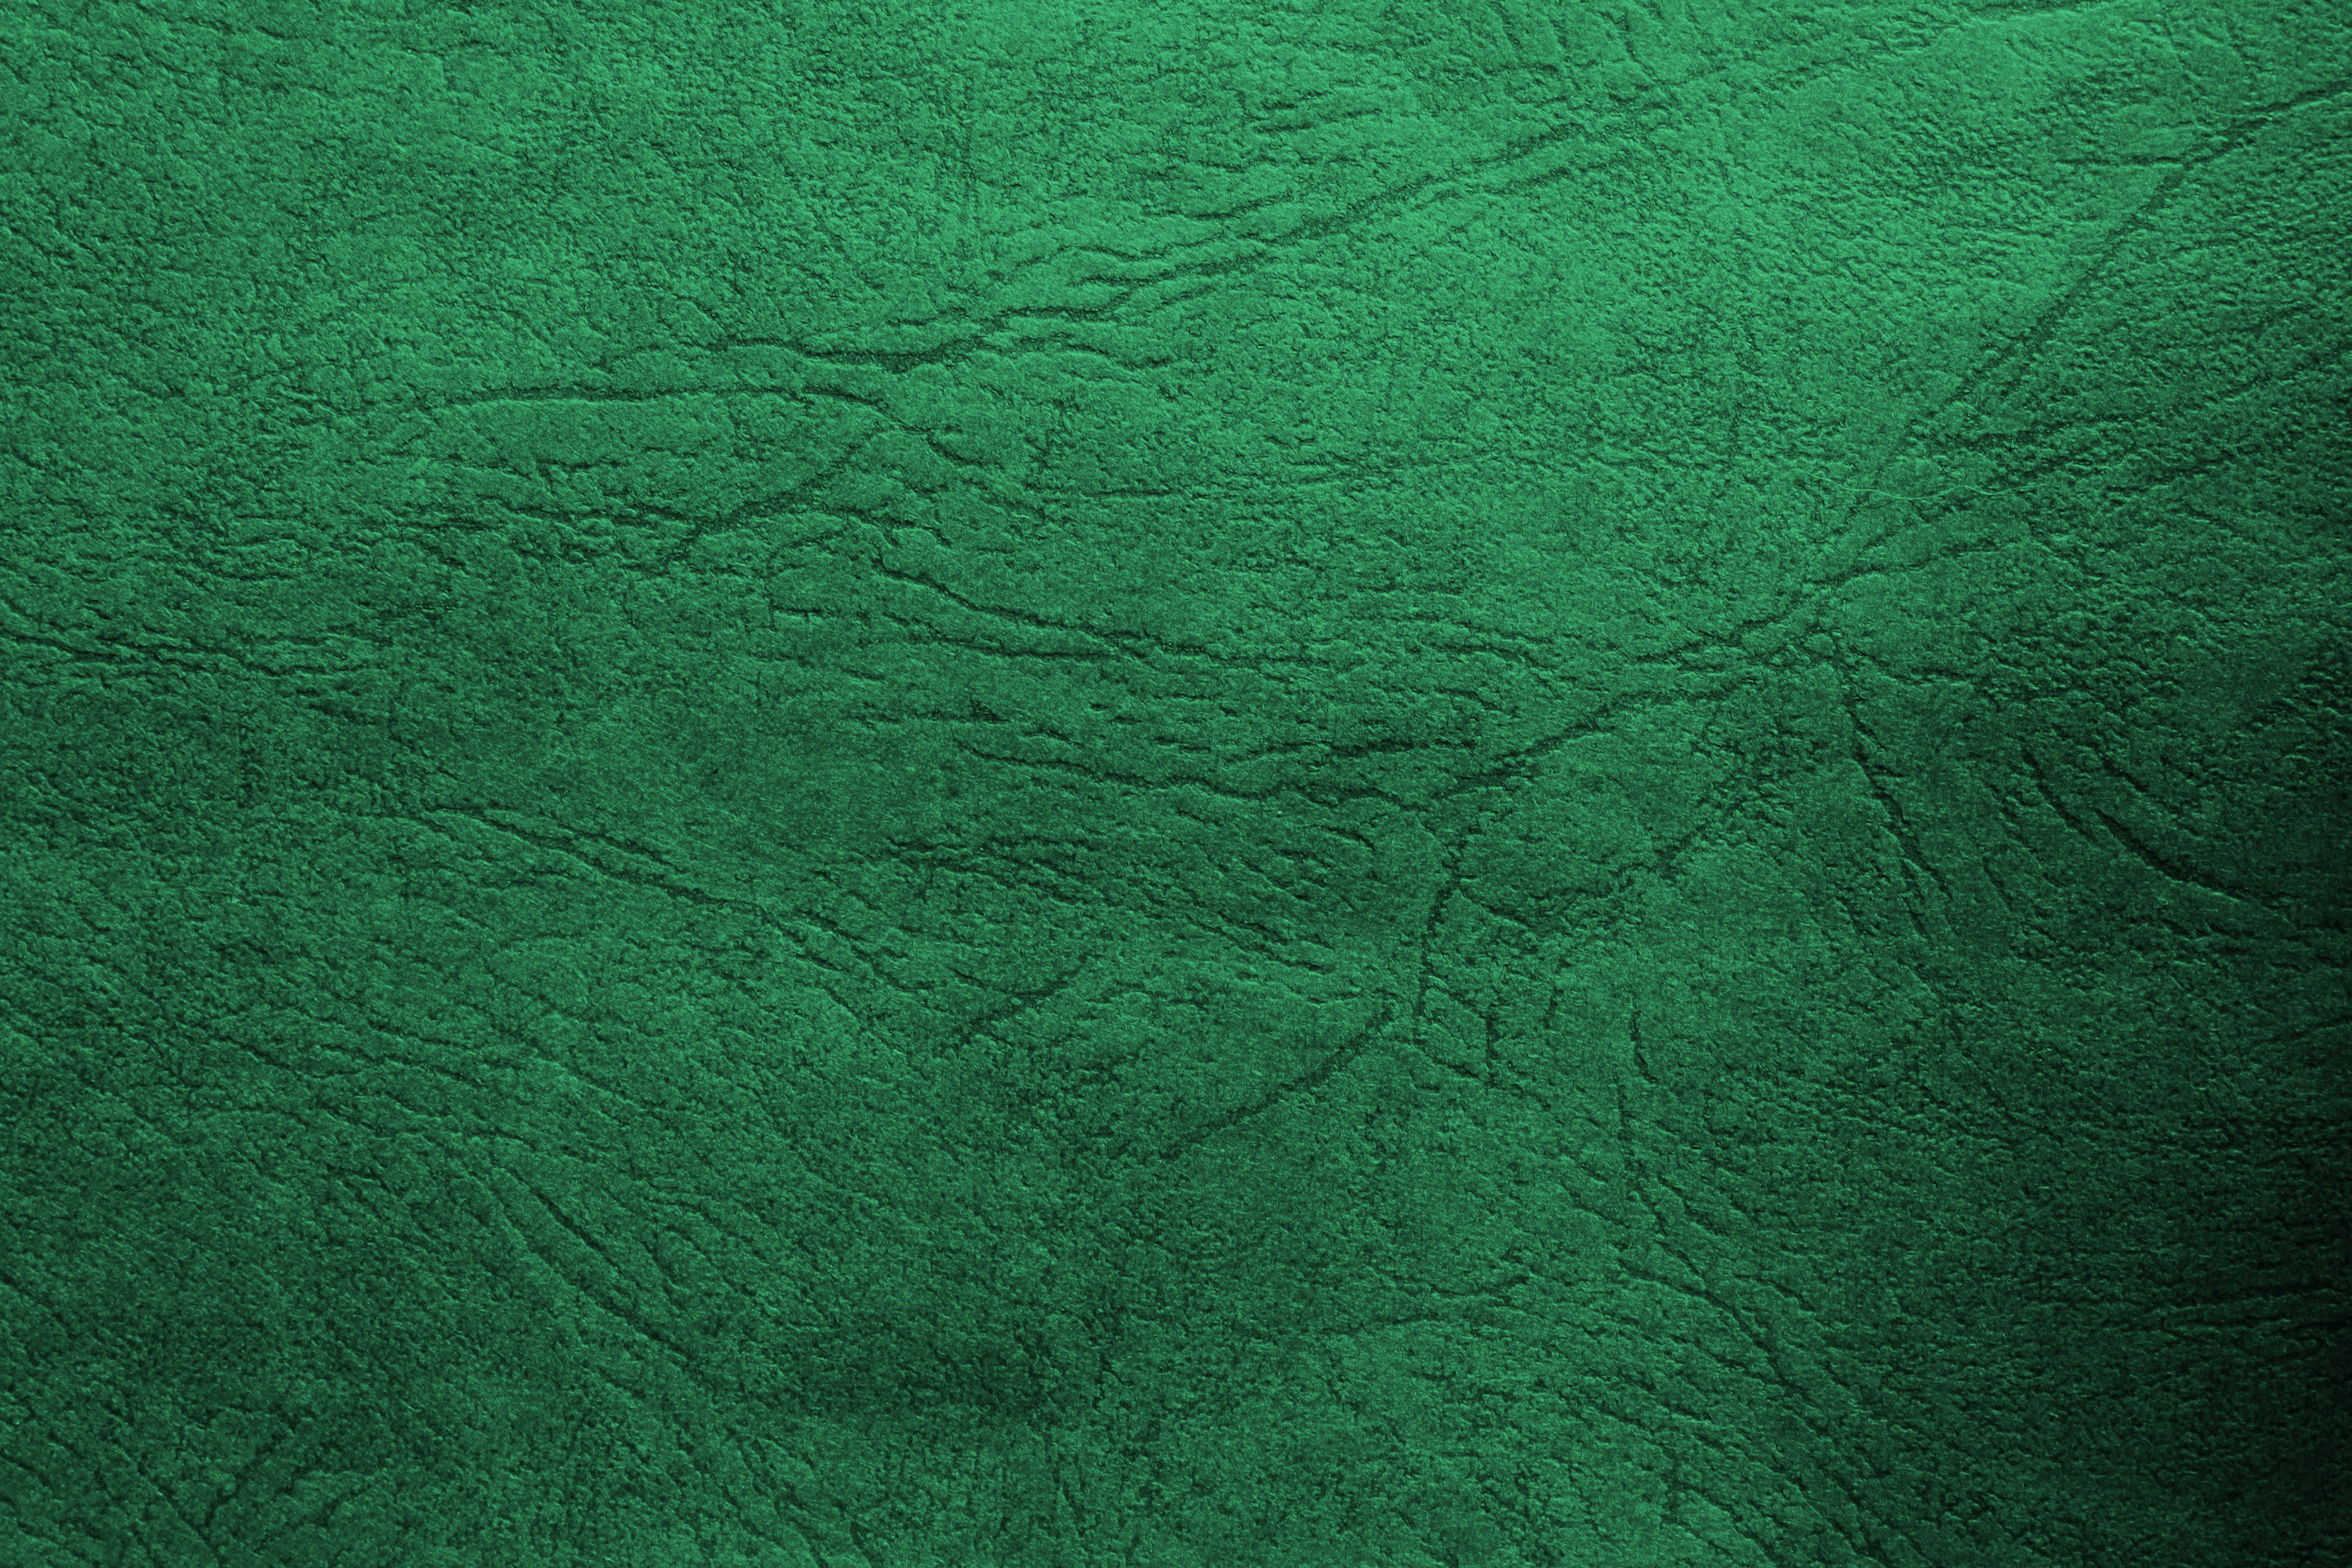 Green Leather Texture  Photos Public Domain. Stained Glass Kitchen Cabinet Doors. Kitchen Storage Organizers. Blue Glass Tile Kitchen Backsplash. Country Kitchen Pbs. Granite For White Kitchen Cabinets. Plans For Building Kitchen Cabinets. Deep Kitchen Drawer Organizers. Weird Kitchen Utensils